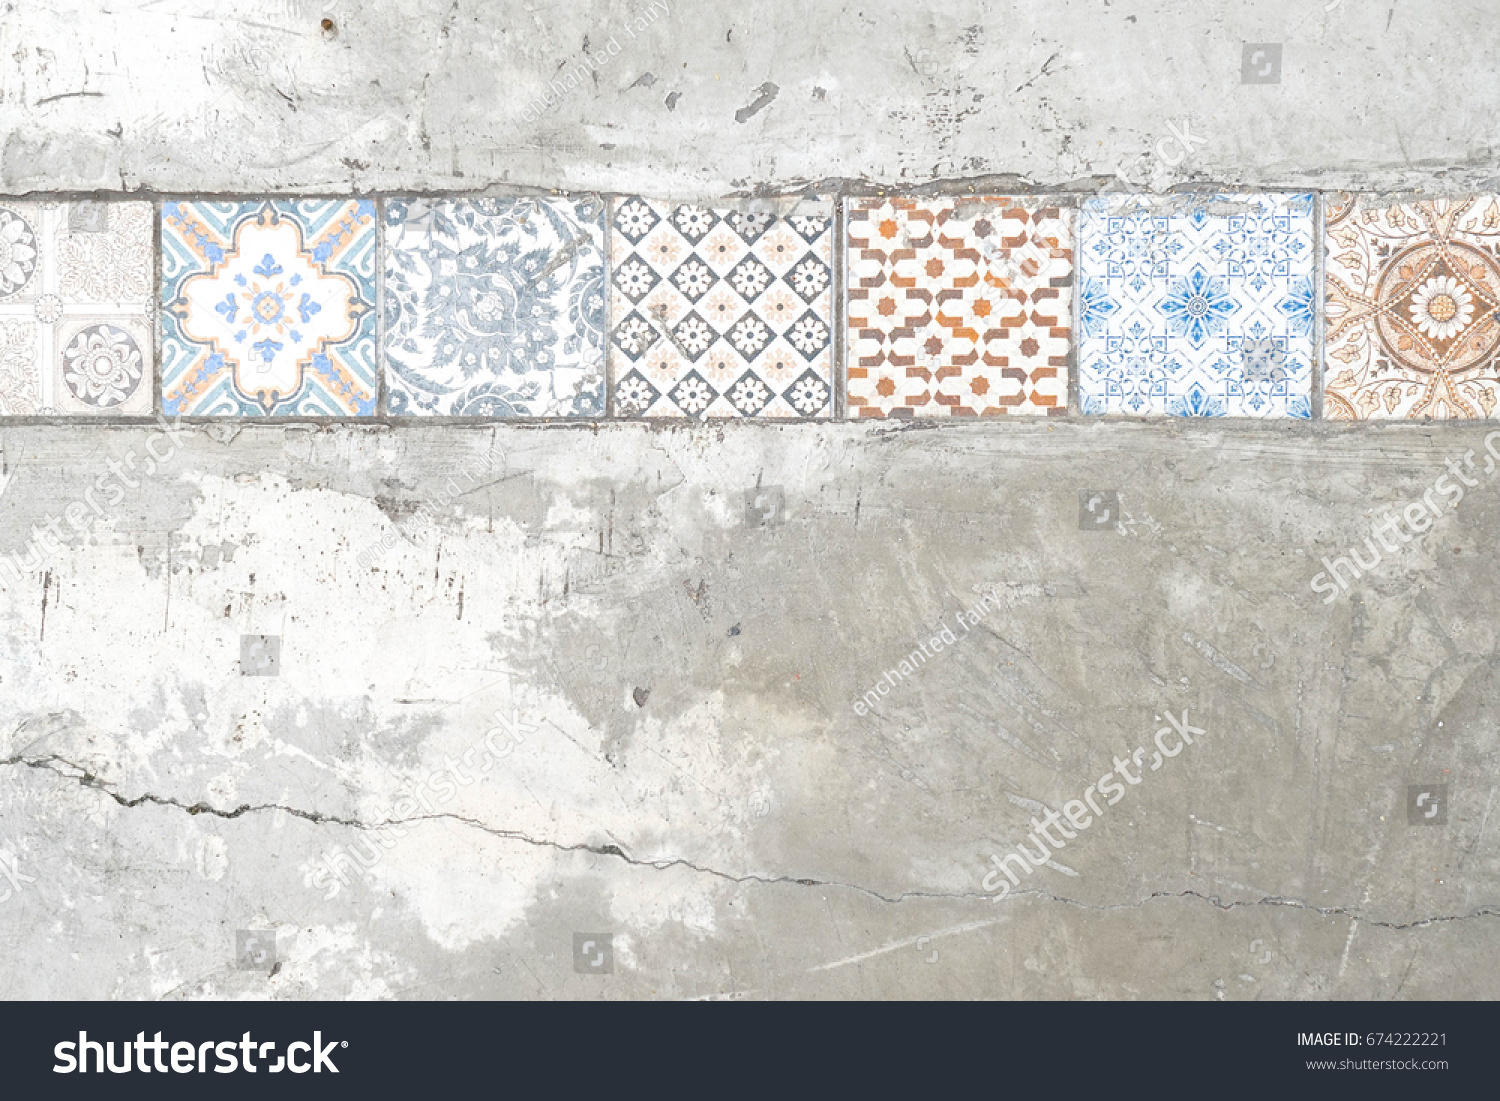 Old paving tiles pattern on concrete stock photo royalty free old paving tiles pattern on the concrete or cement wall with cracks ceramic tile pattern dailygadgetfo Choice Image